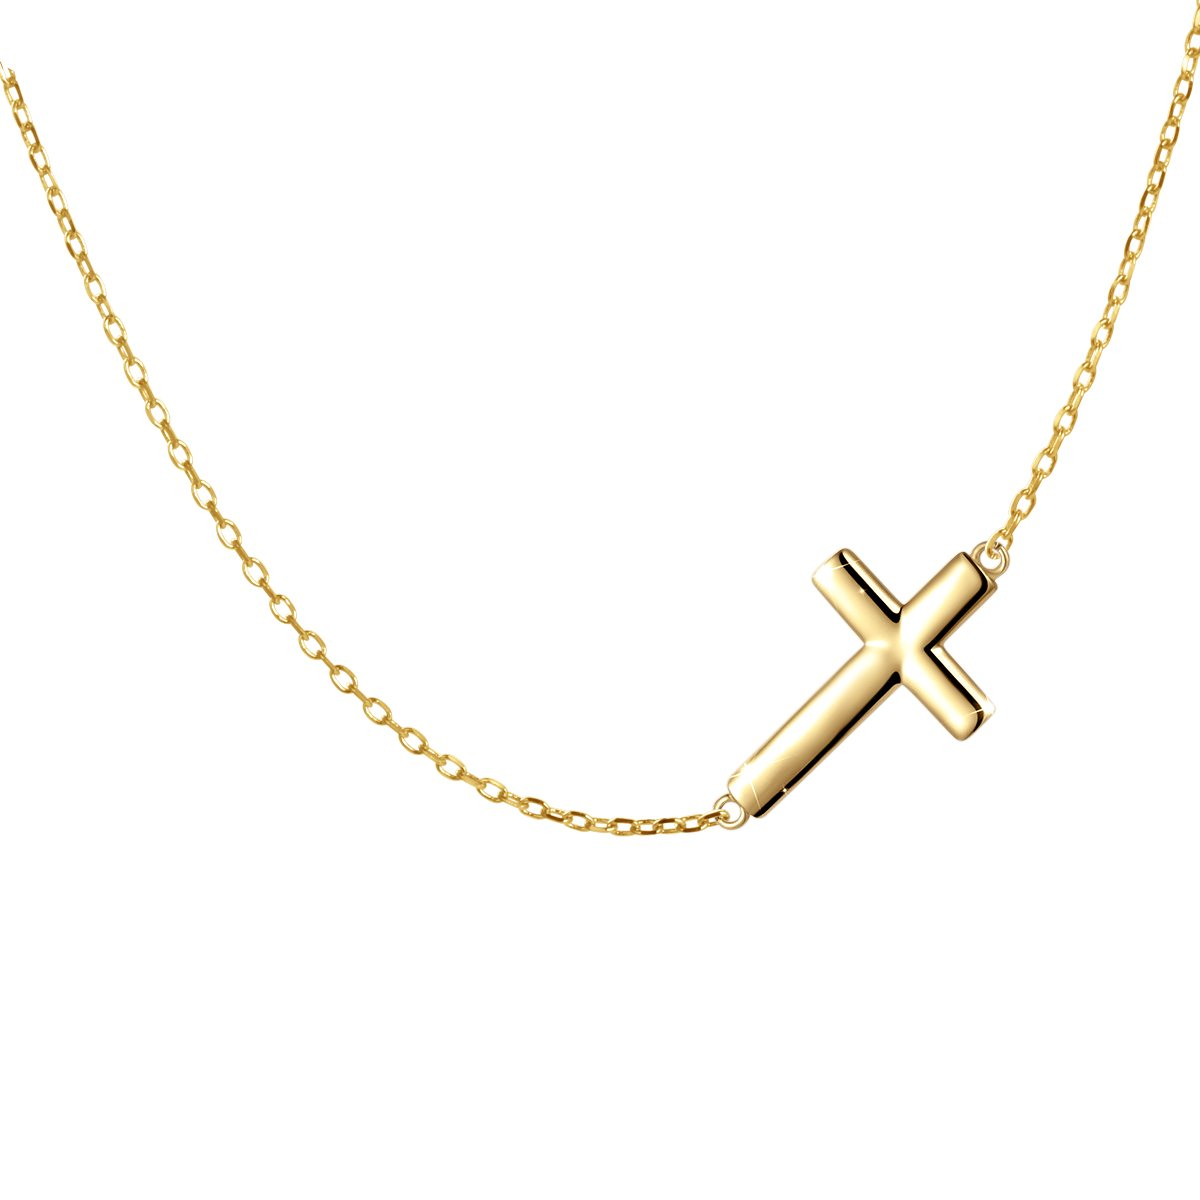 S925 Sterling Silver Jewelry Sideways Cross Choker Necklace 16+2''